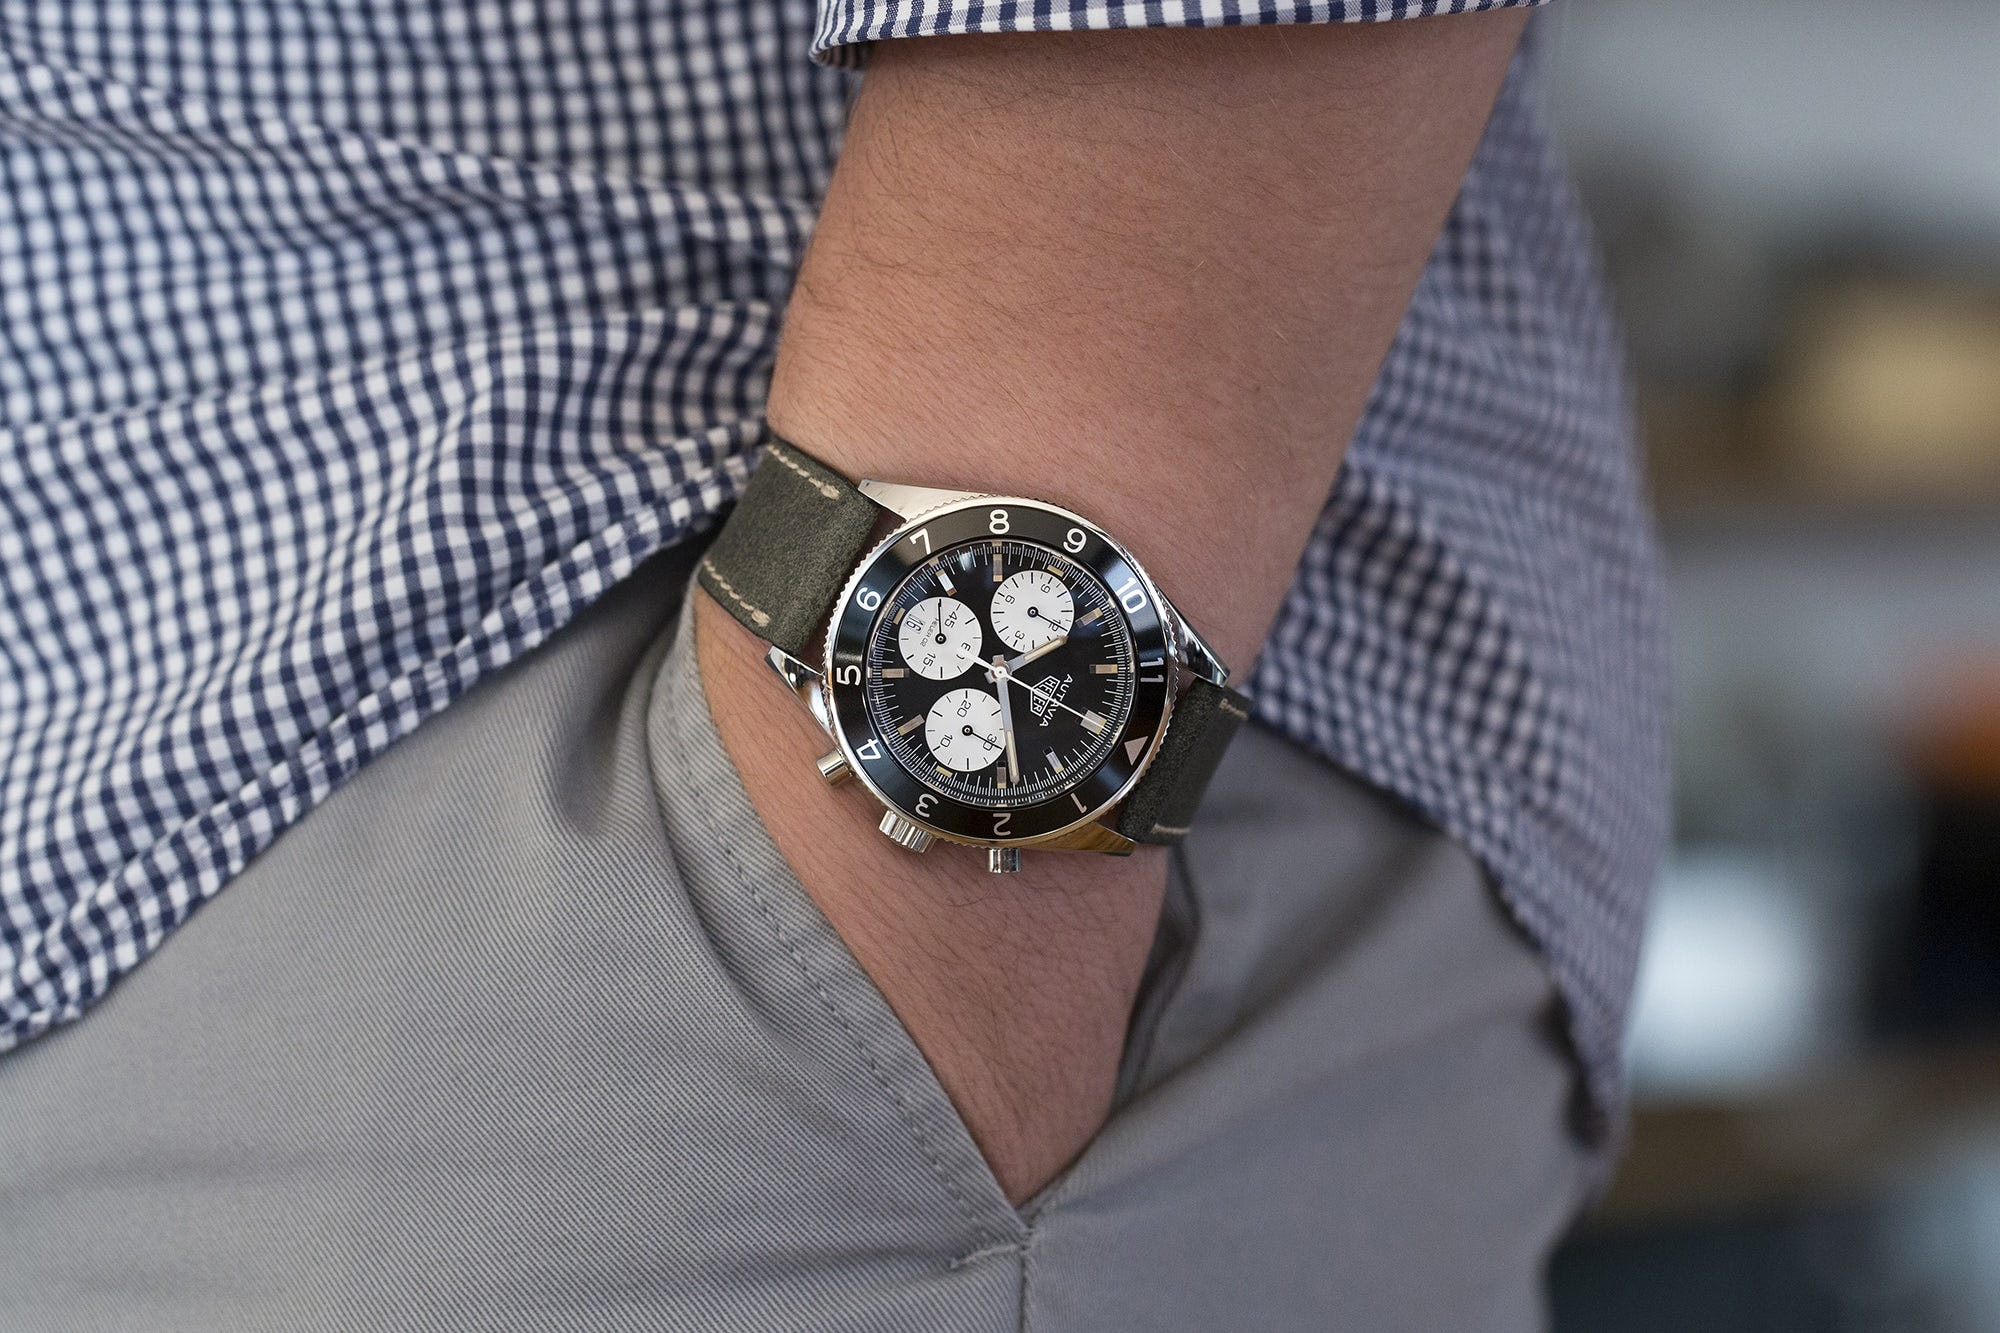 A Week On The Wrist: Ten Of The Biggest, Baddest HODINKEE Reviews Ever A Week On The Wrist: Ten Of The Biggest, Baddest HODINKEE Reviews Ever tag